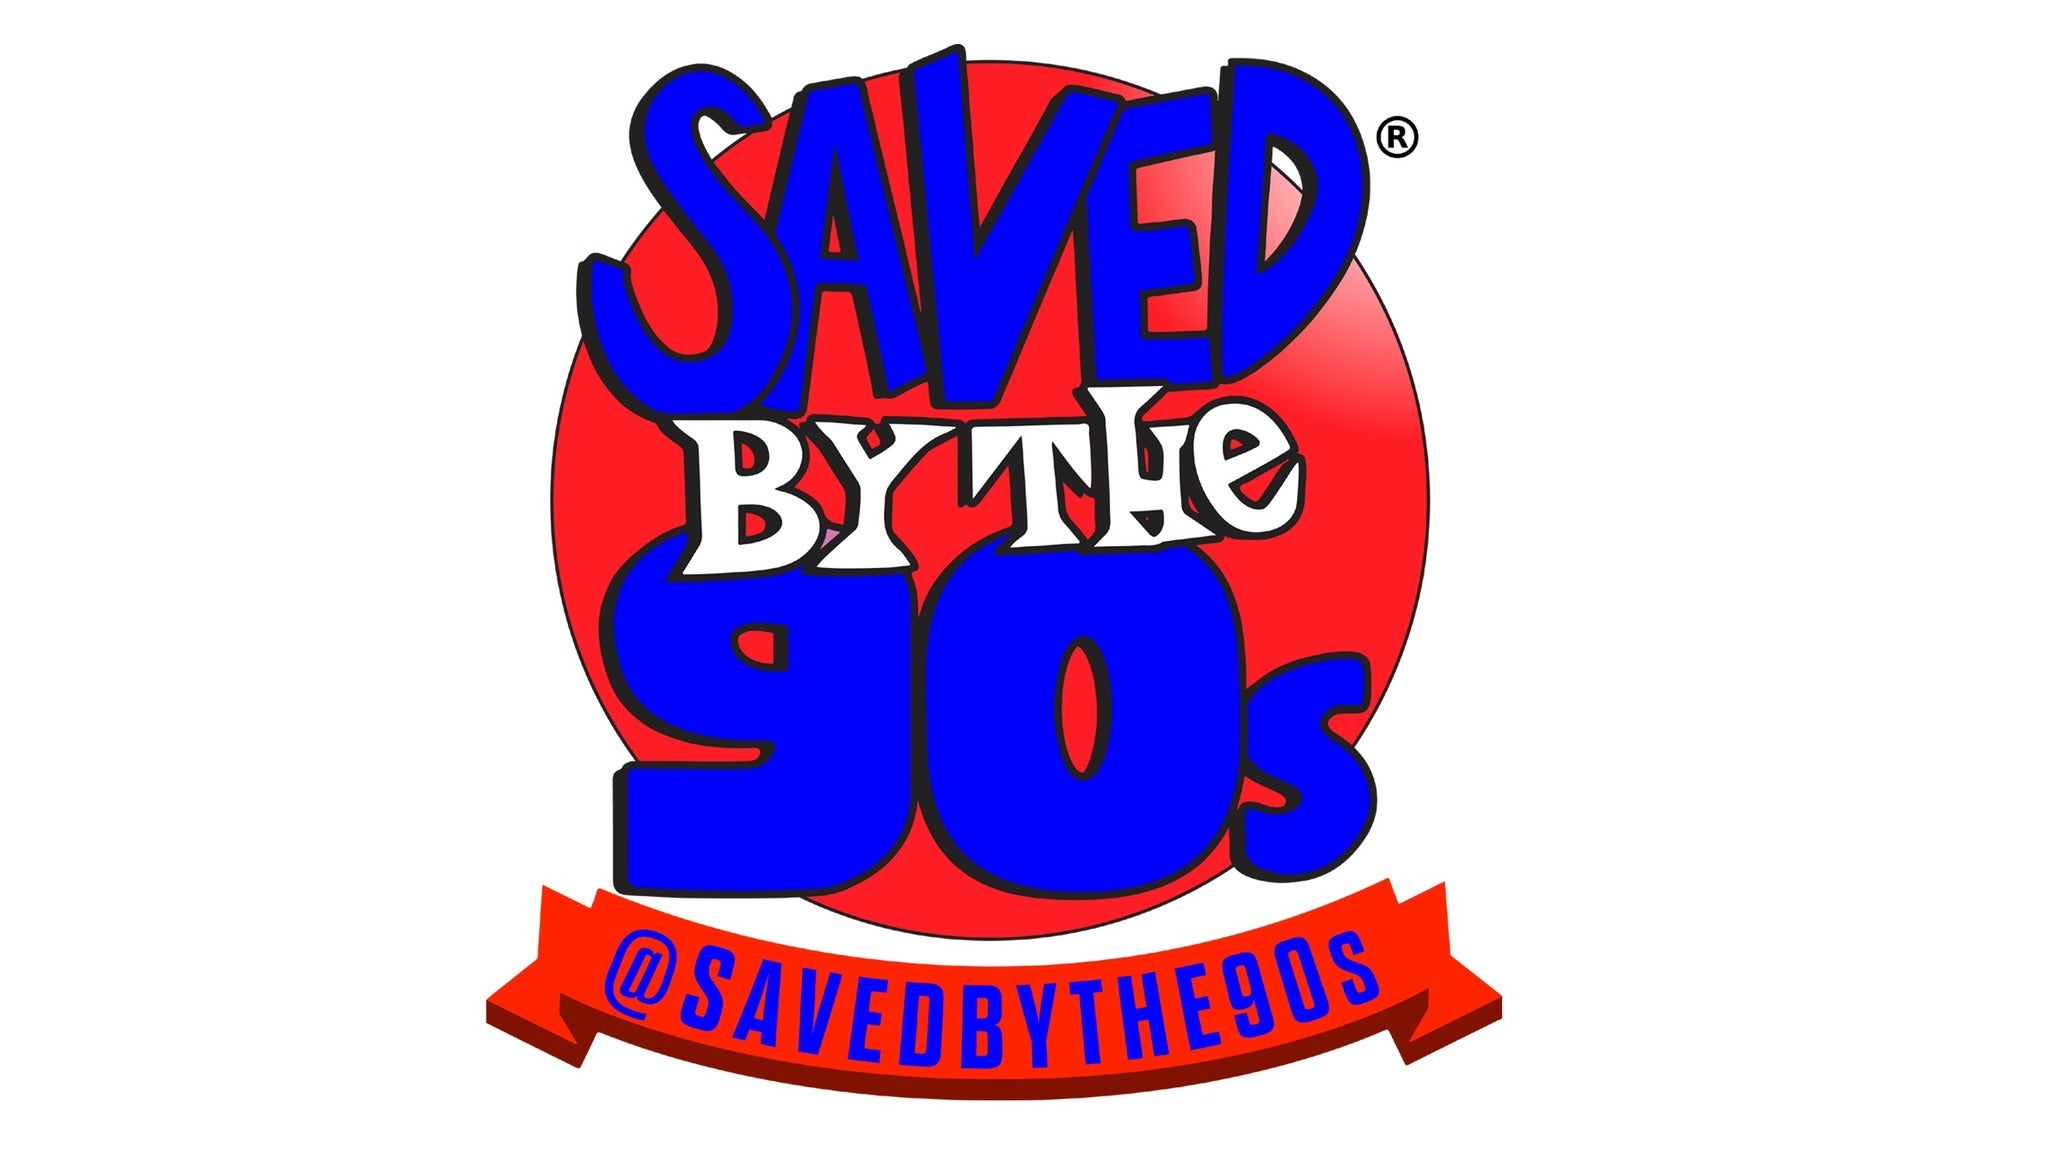 Saved By The 90's at Newport Music Hall